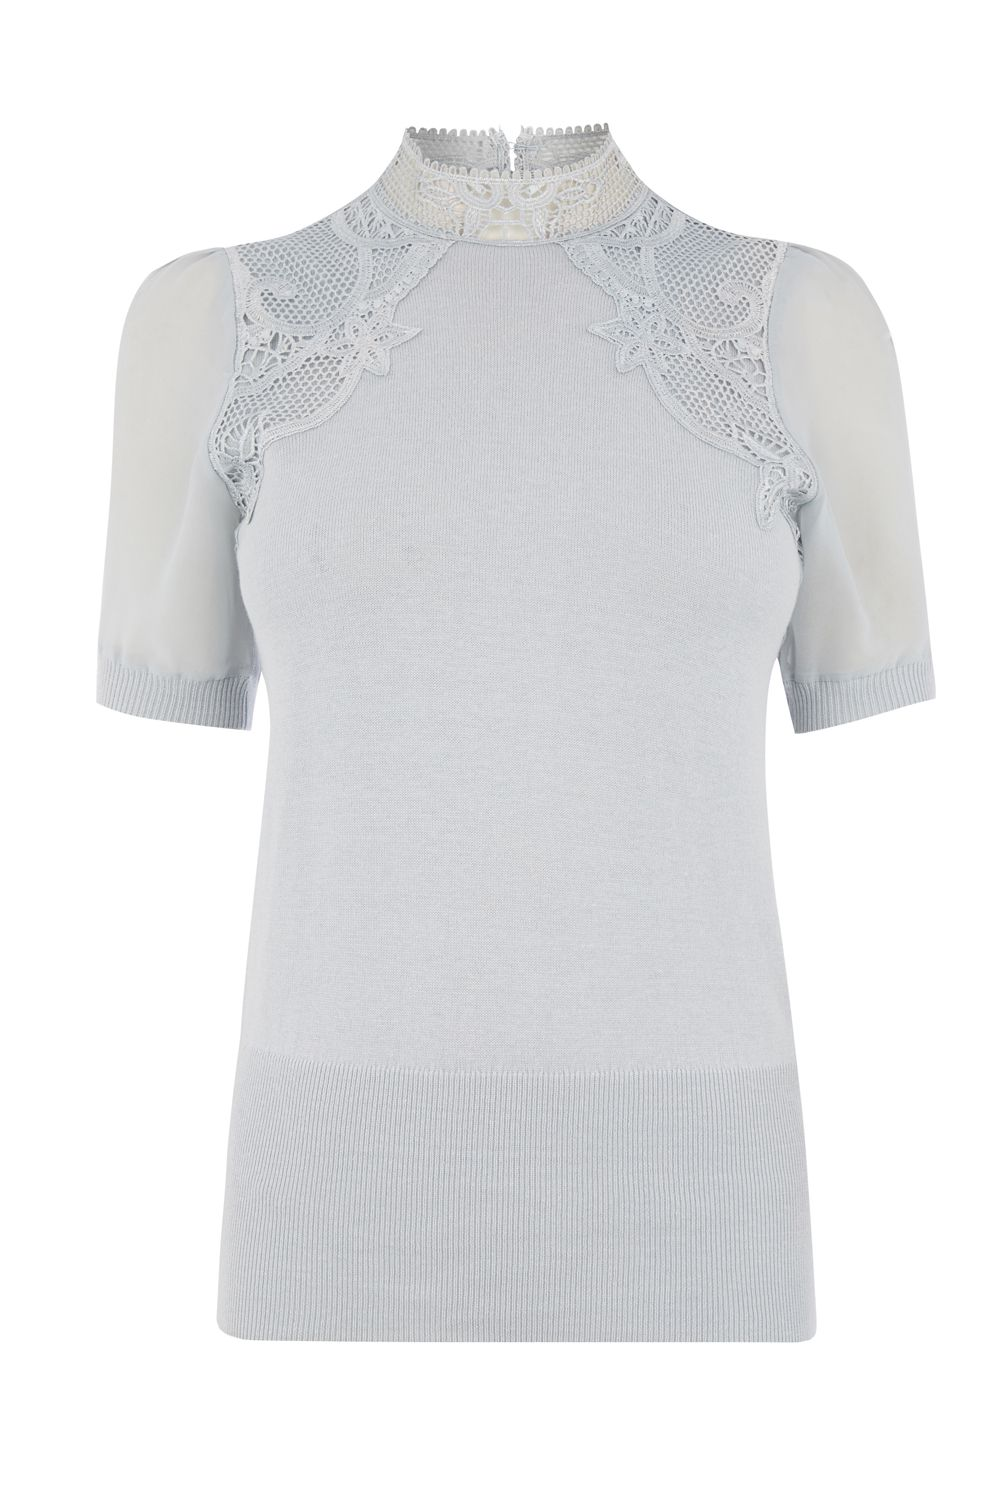 Oasis Lace and sheer SS knit, Mid Grey